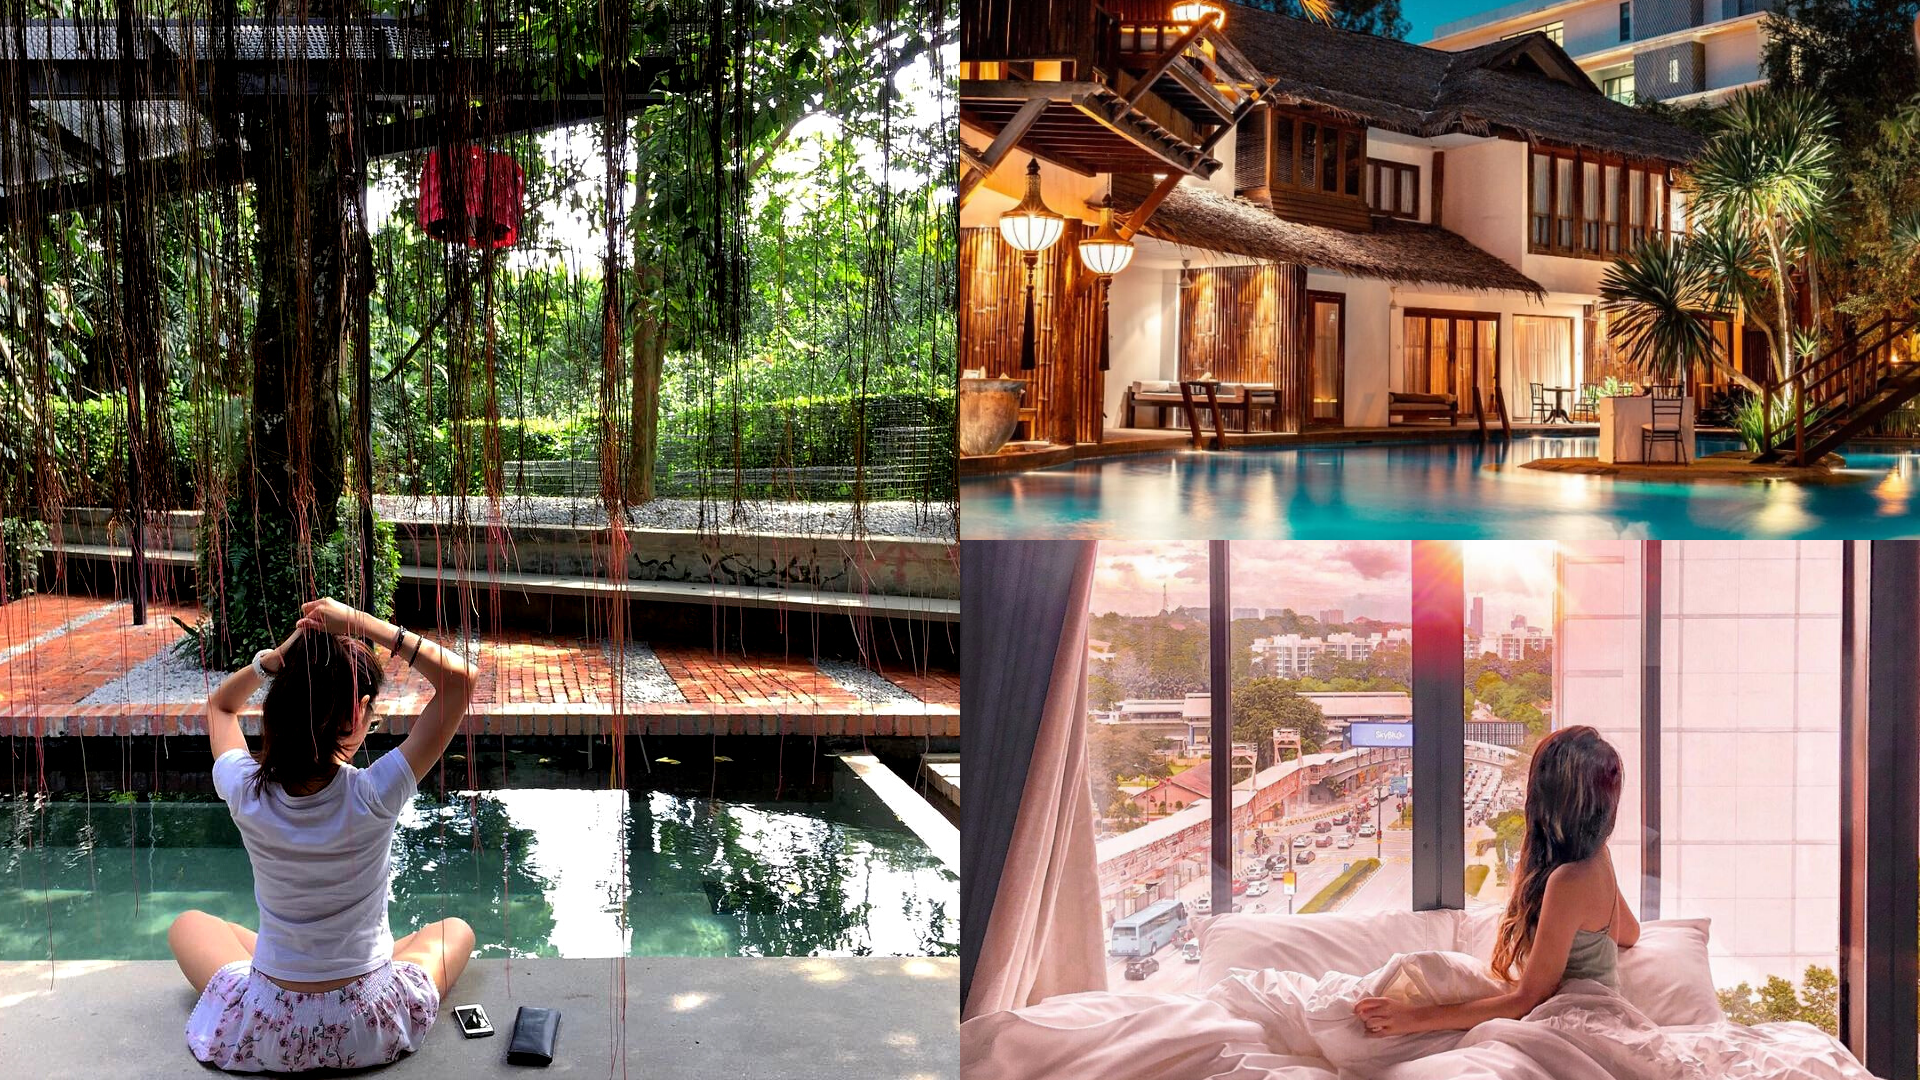 13 Charming Staycation Spots In The Heart Of KL City - Perfect Weekend Getaway Ideas